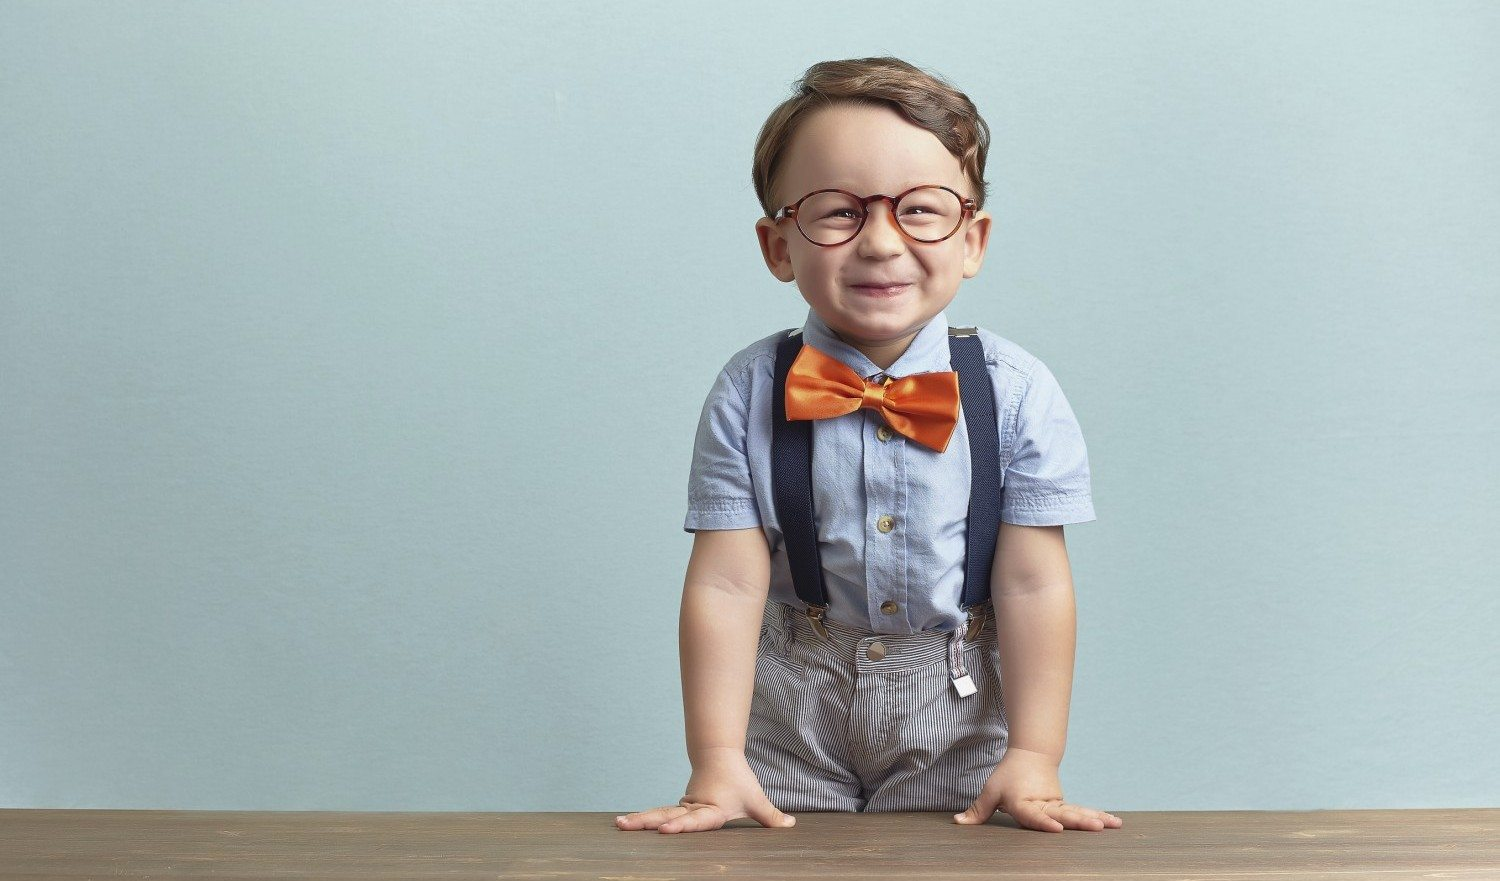 Around three years old boy in an orange bow tie and glasses, wearing blue shirt. He put his hands on the brown table, seems to be happy and joyfull over baby-blue backgorund. He squints and his teeth are seen. Photo was taken by Canon DSLR